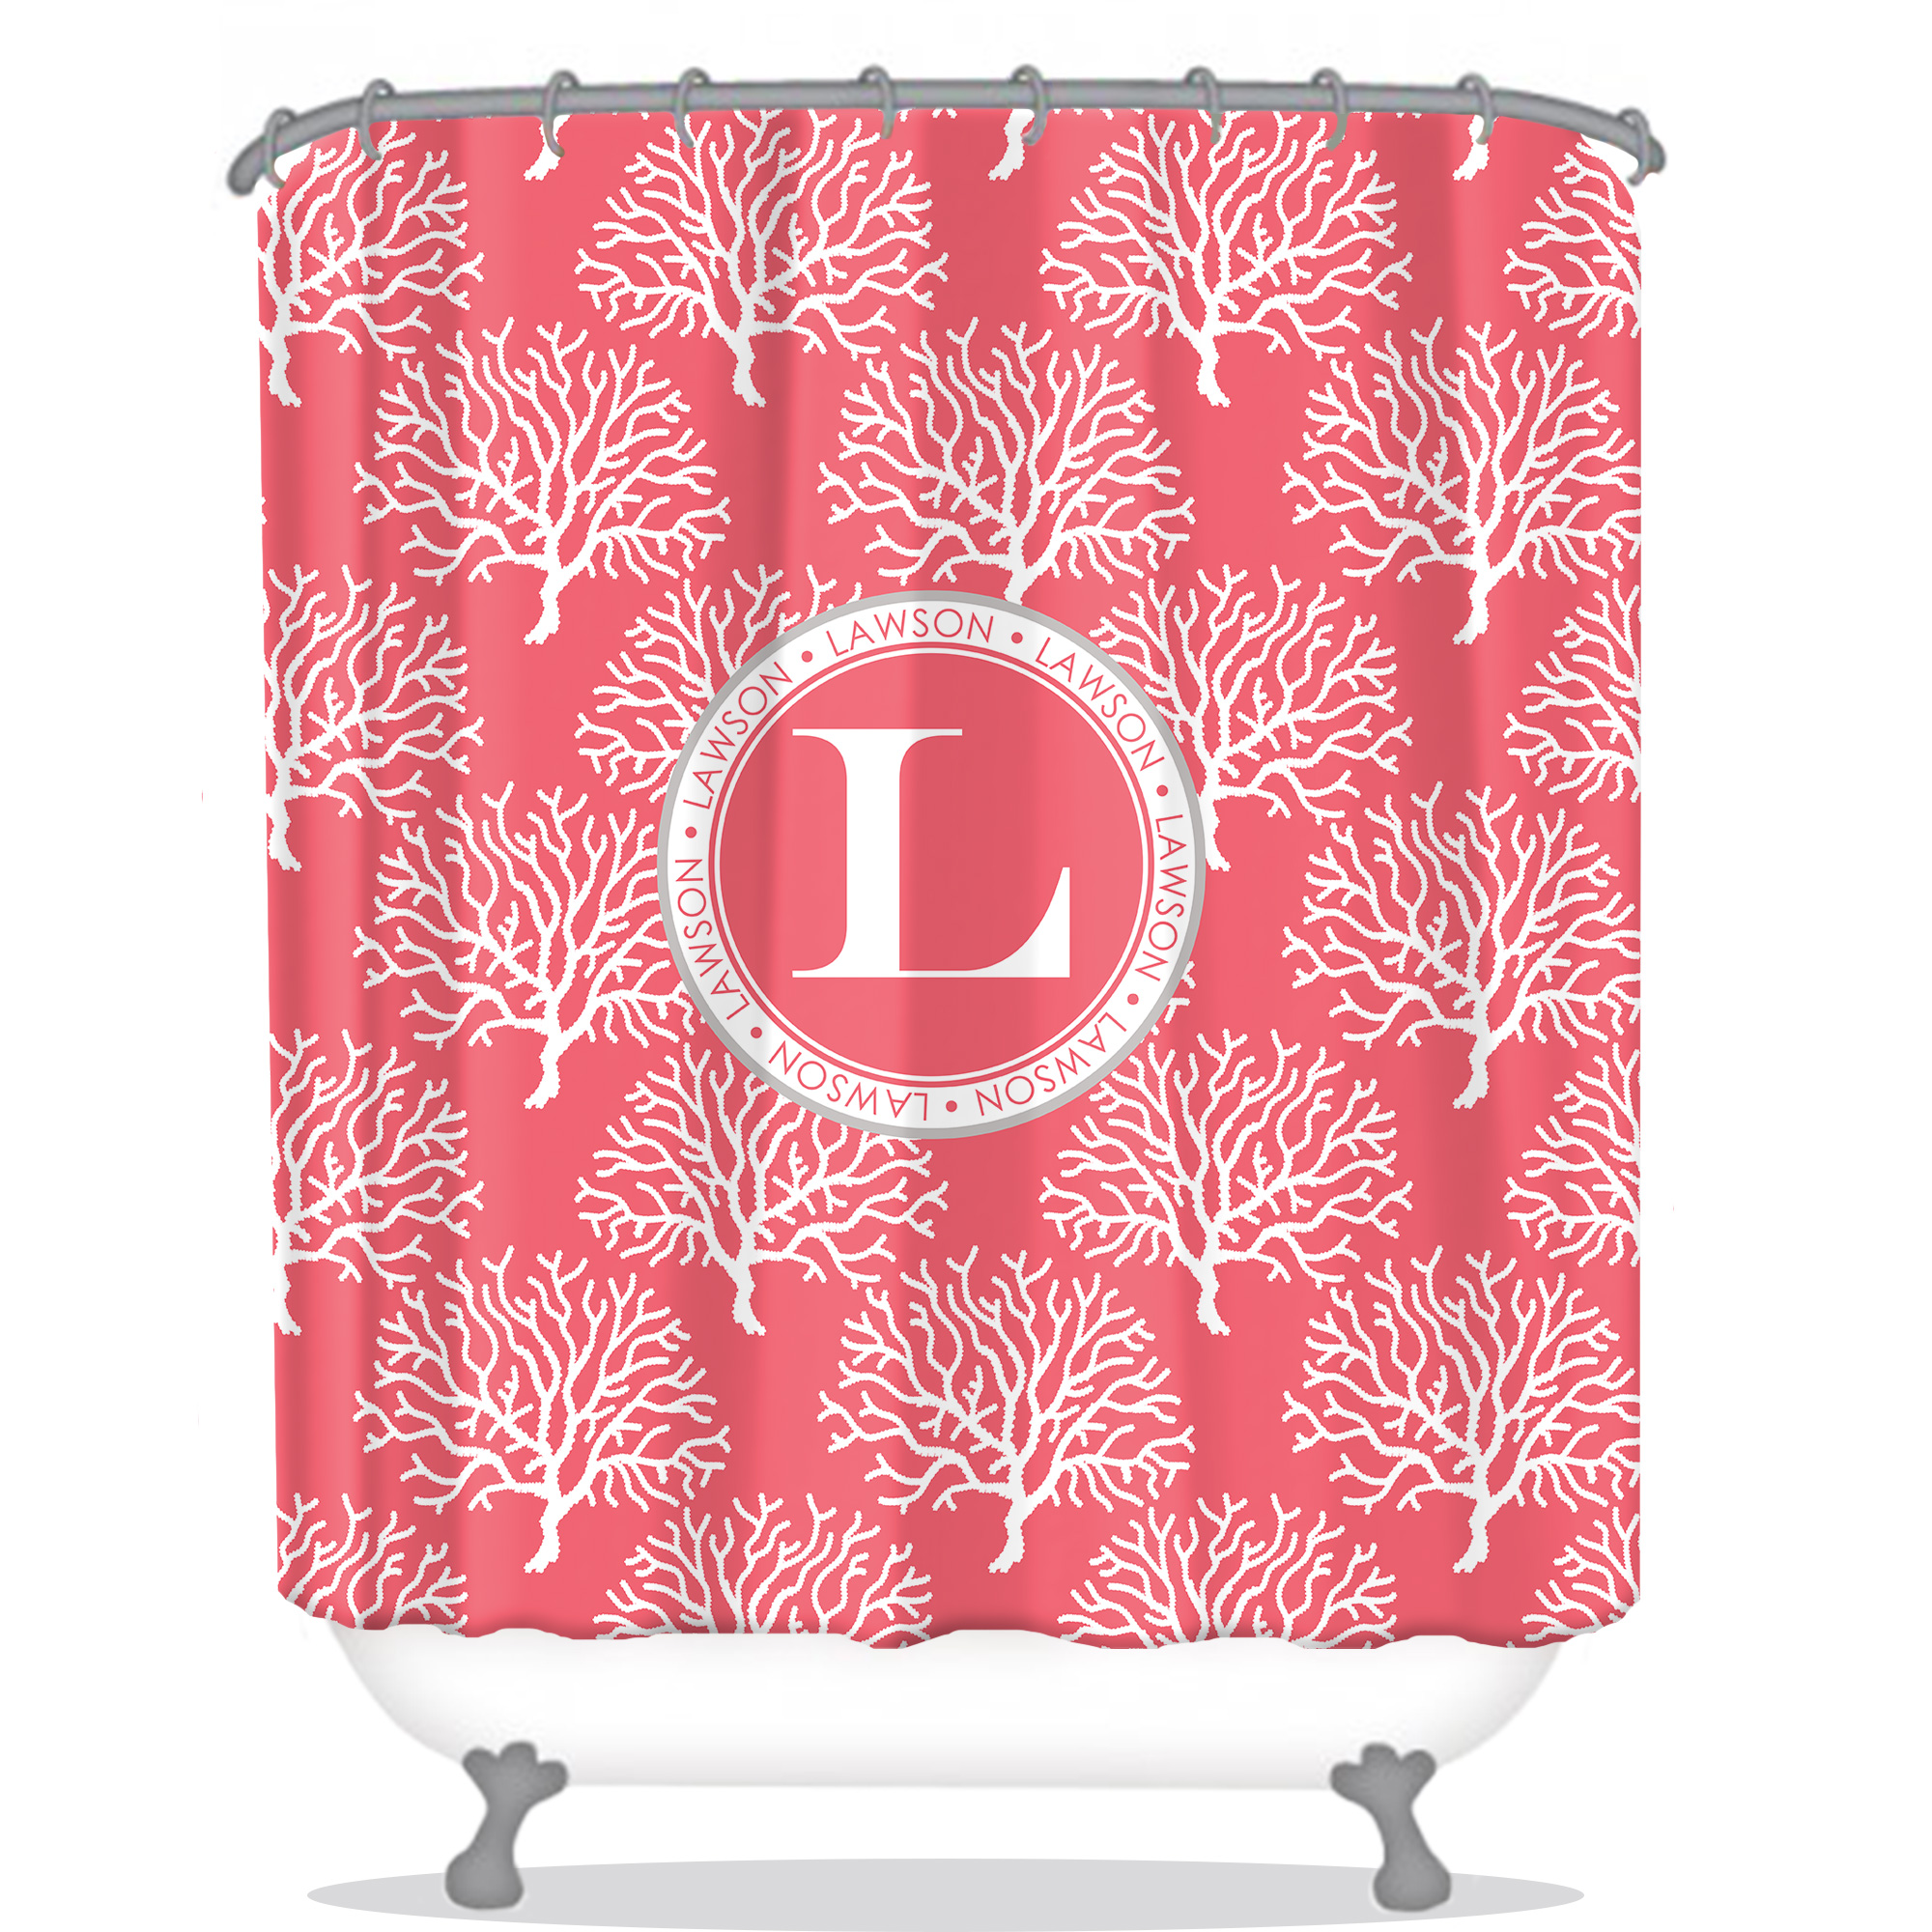 Coral Personalized Shower Curtain Monogrammed Shower Curtain Custom Shower Curtain